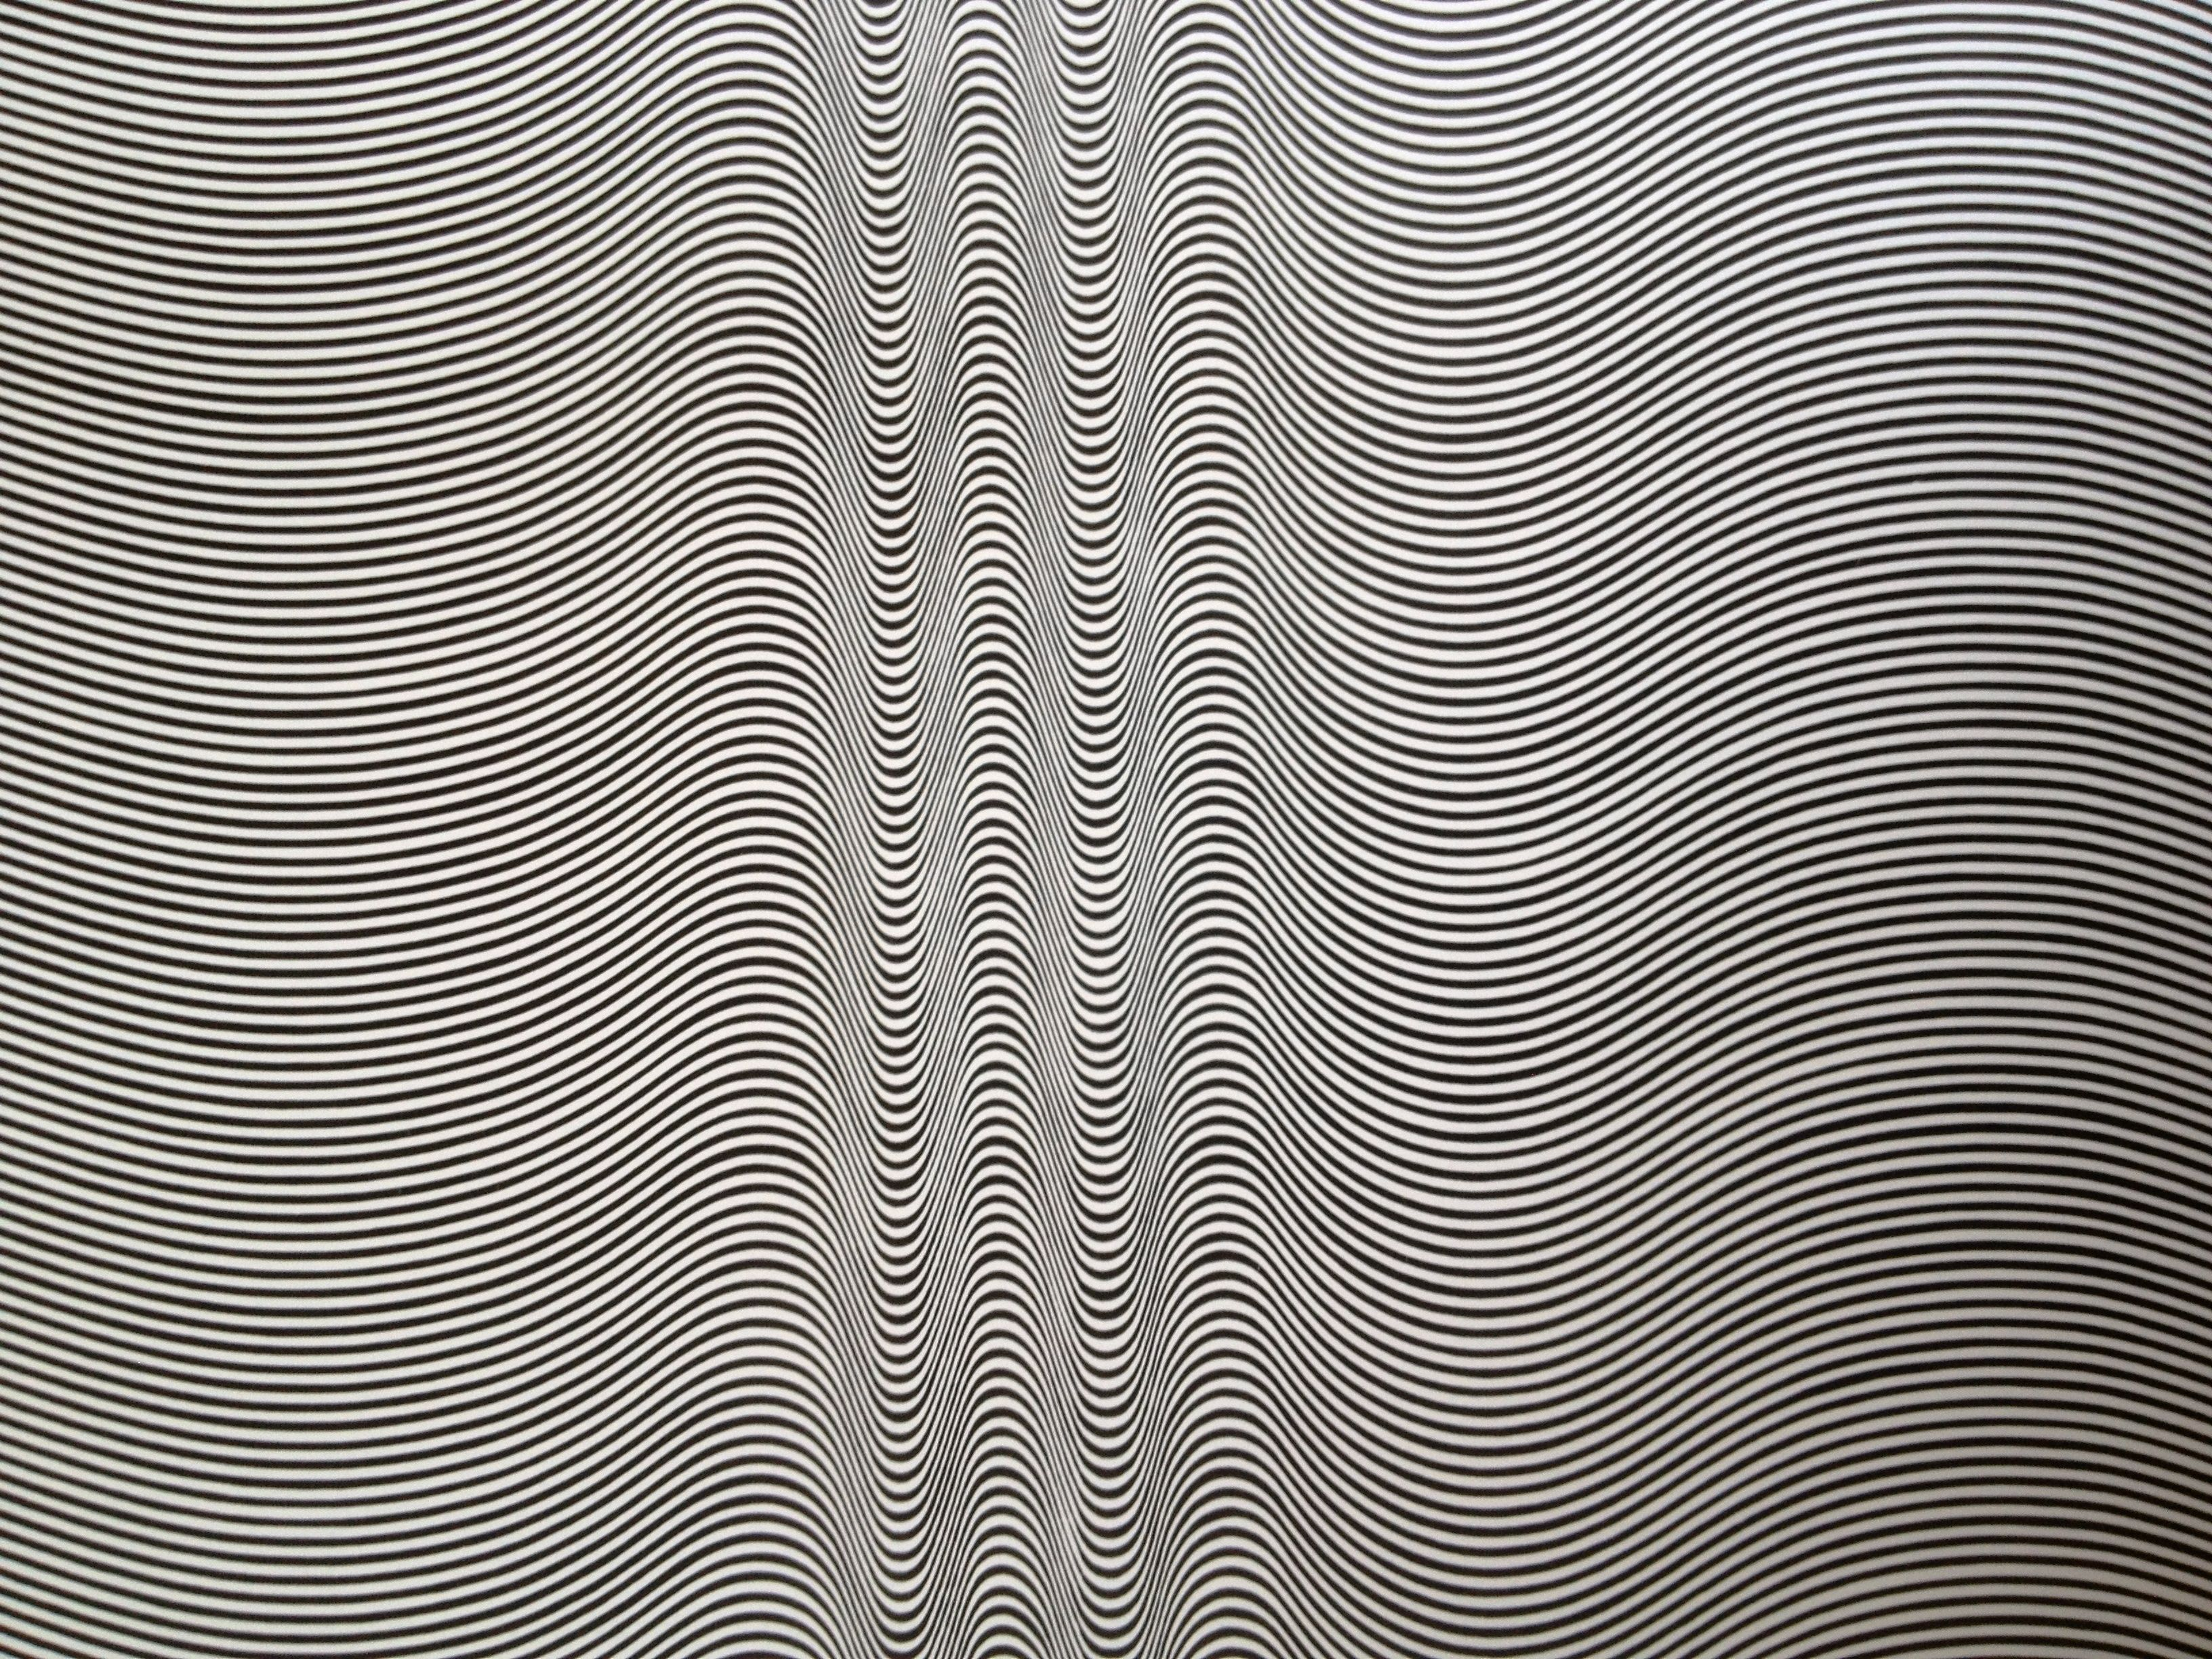 Favori Bridget Riley - 'Current' - 1964 | Bridget Riley OP ART  TS22